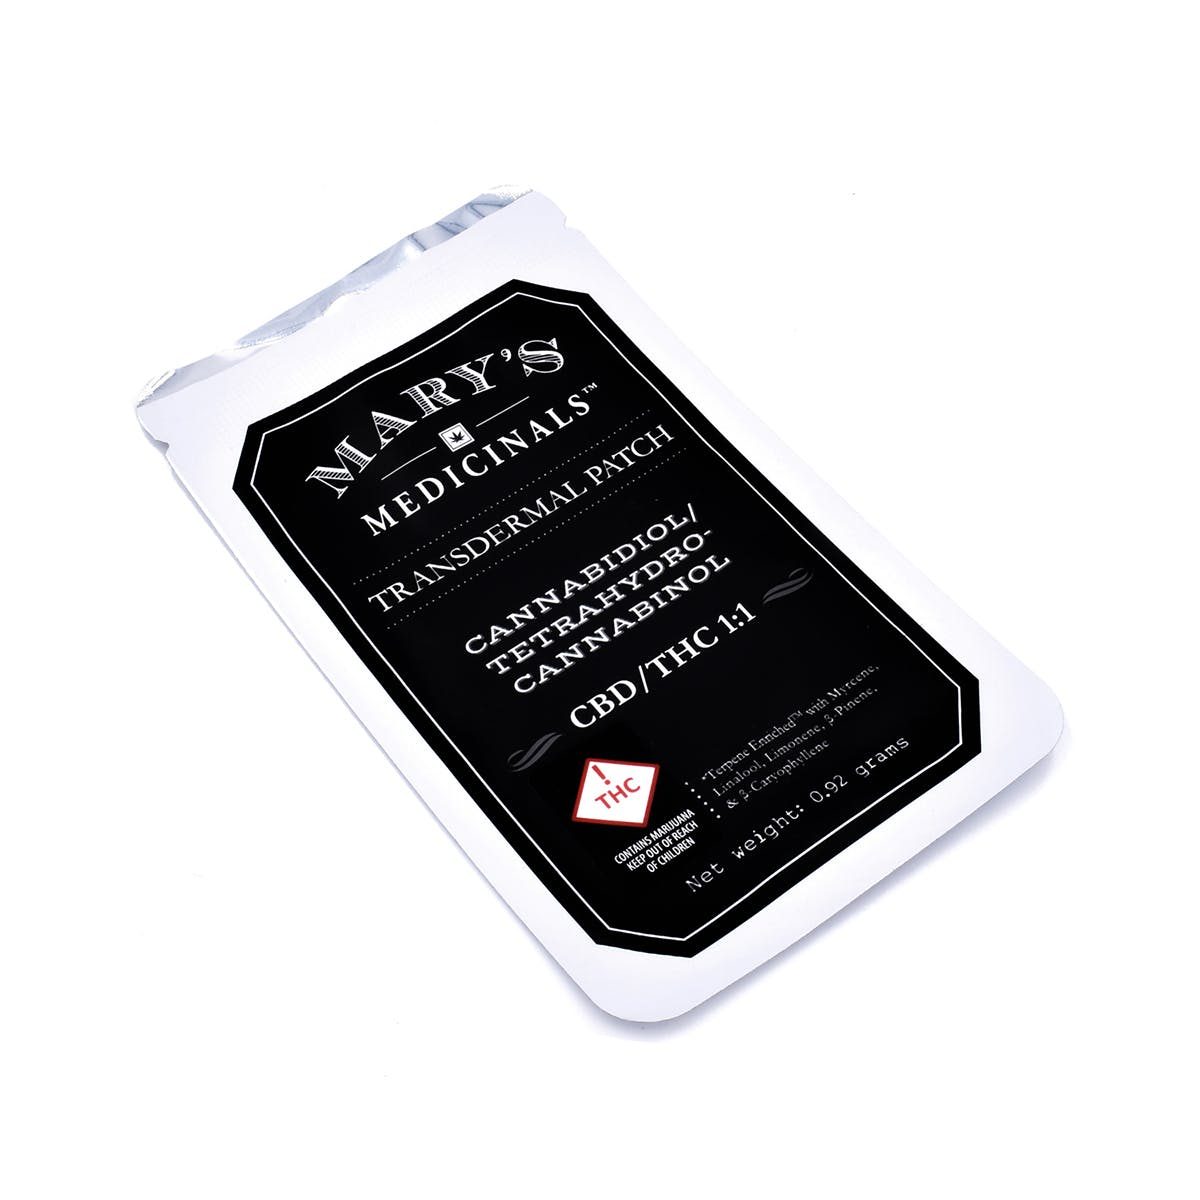 CBD THC 1:1 Transdermal Patch, 10mg - REC